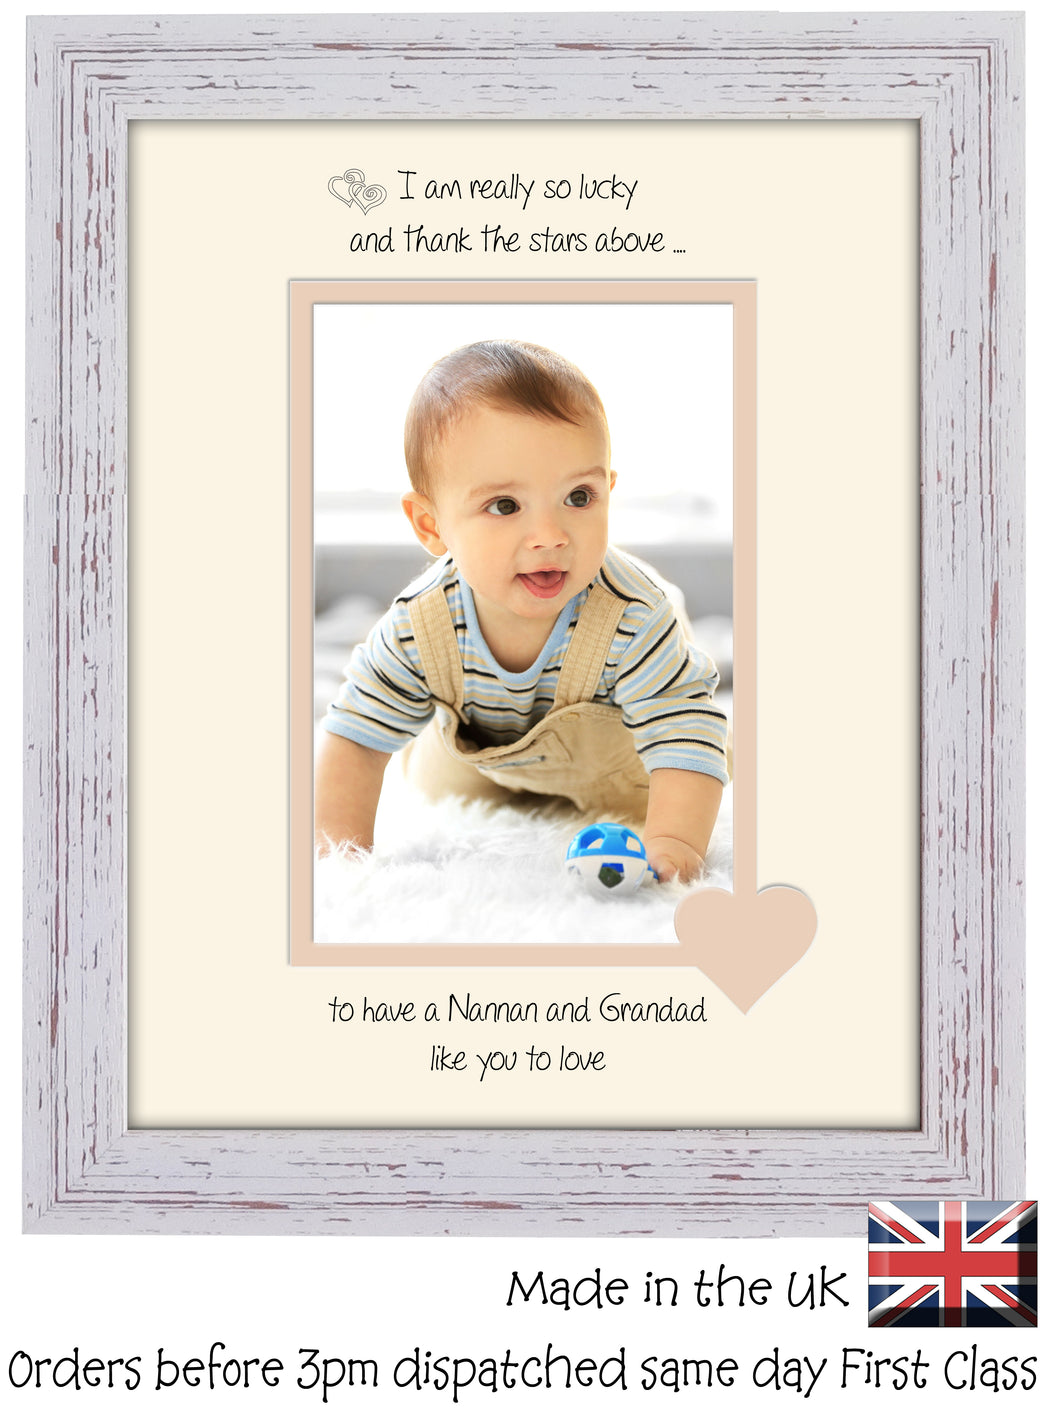 Nannan & Grandad Photo Frame - I Thank the stars Nannan & Grandad Portrait photo frame 6